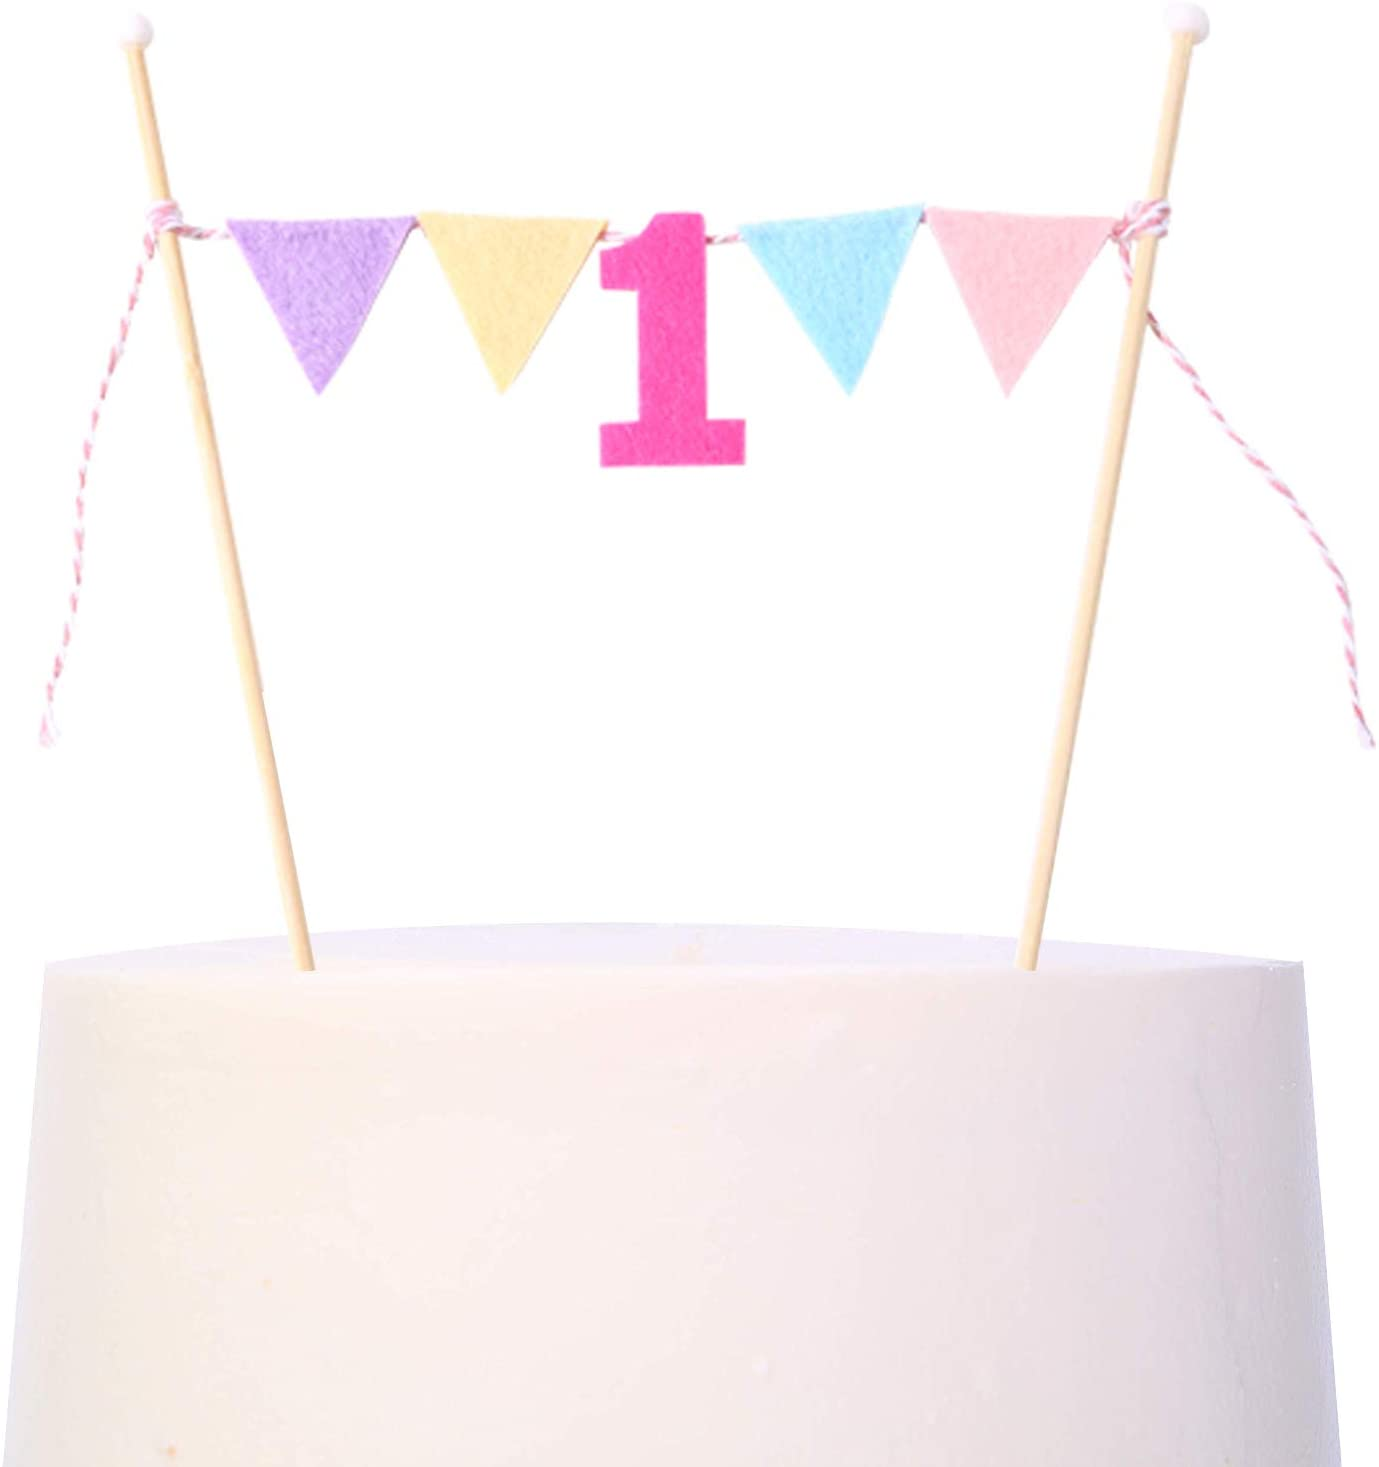 1st Birthday Cake Topper for Baby Kids - First Birthday Cake Decoration,Colorful Birthday Decorations for Photo Booth Props,Best Party Supplies for 1st Birthday